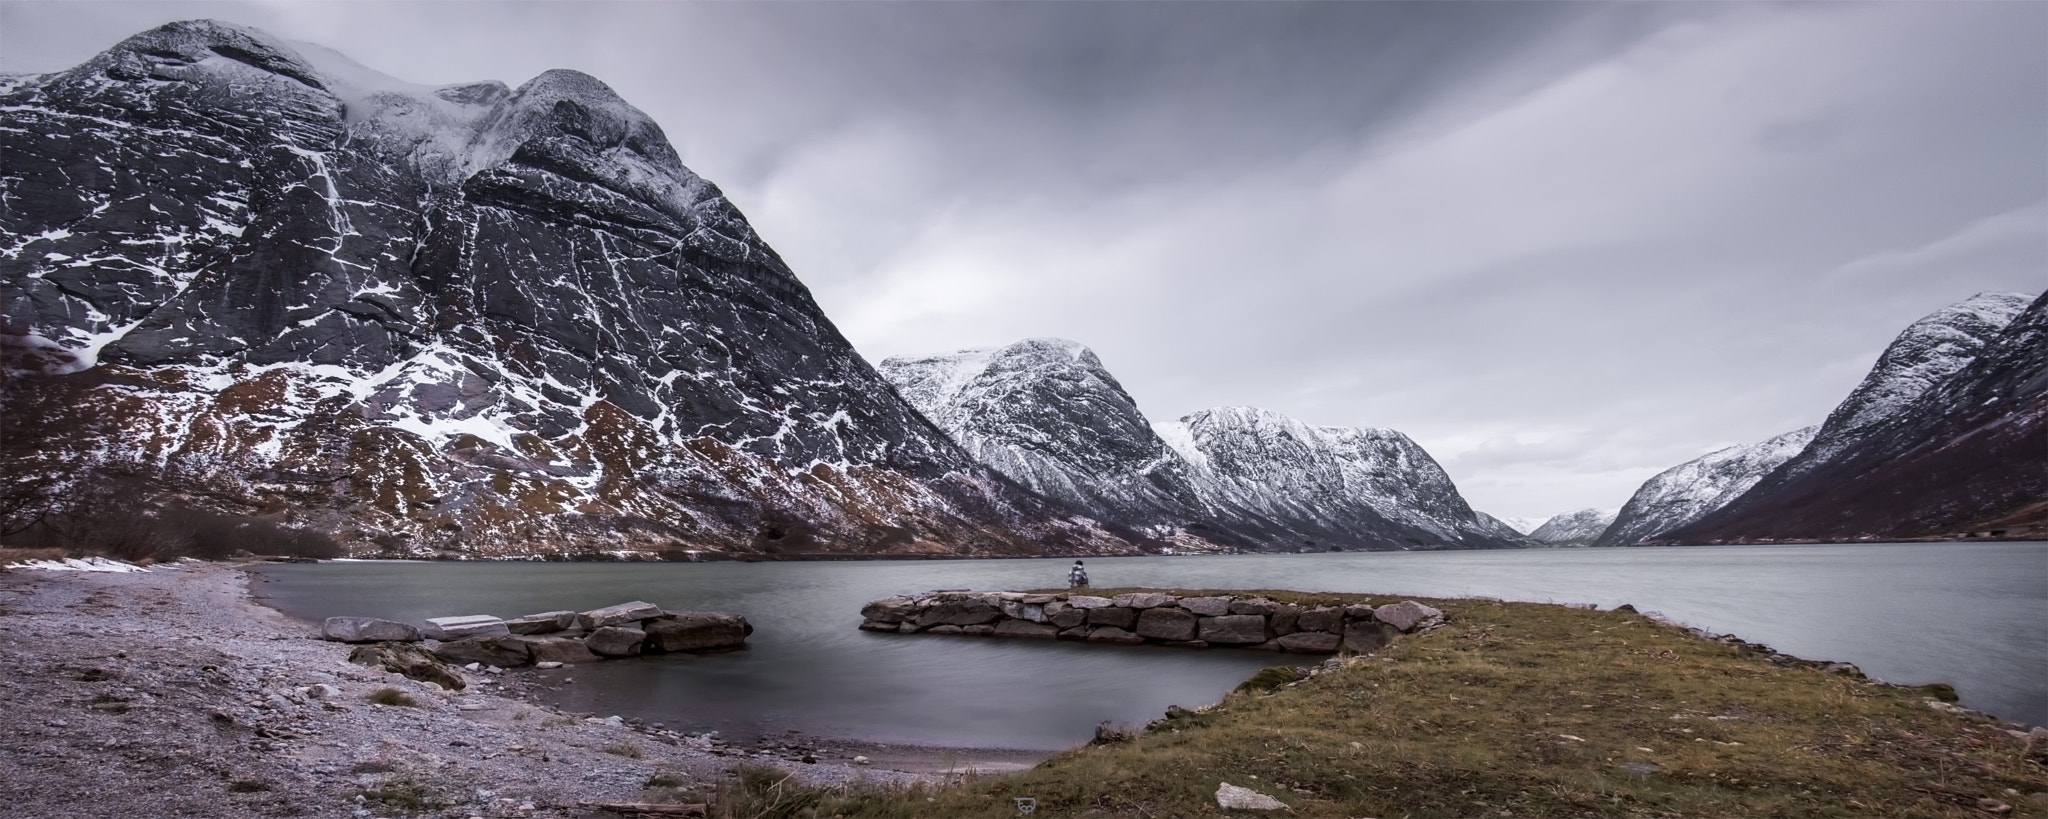 Photograph Norway - Lunde Fjord by Thomas MARIE on 500px